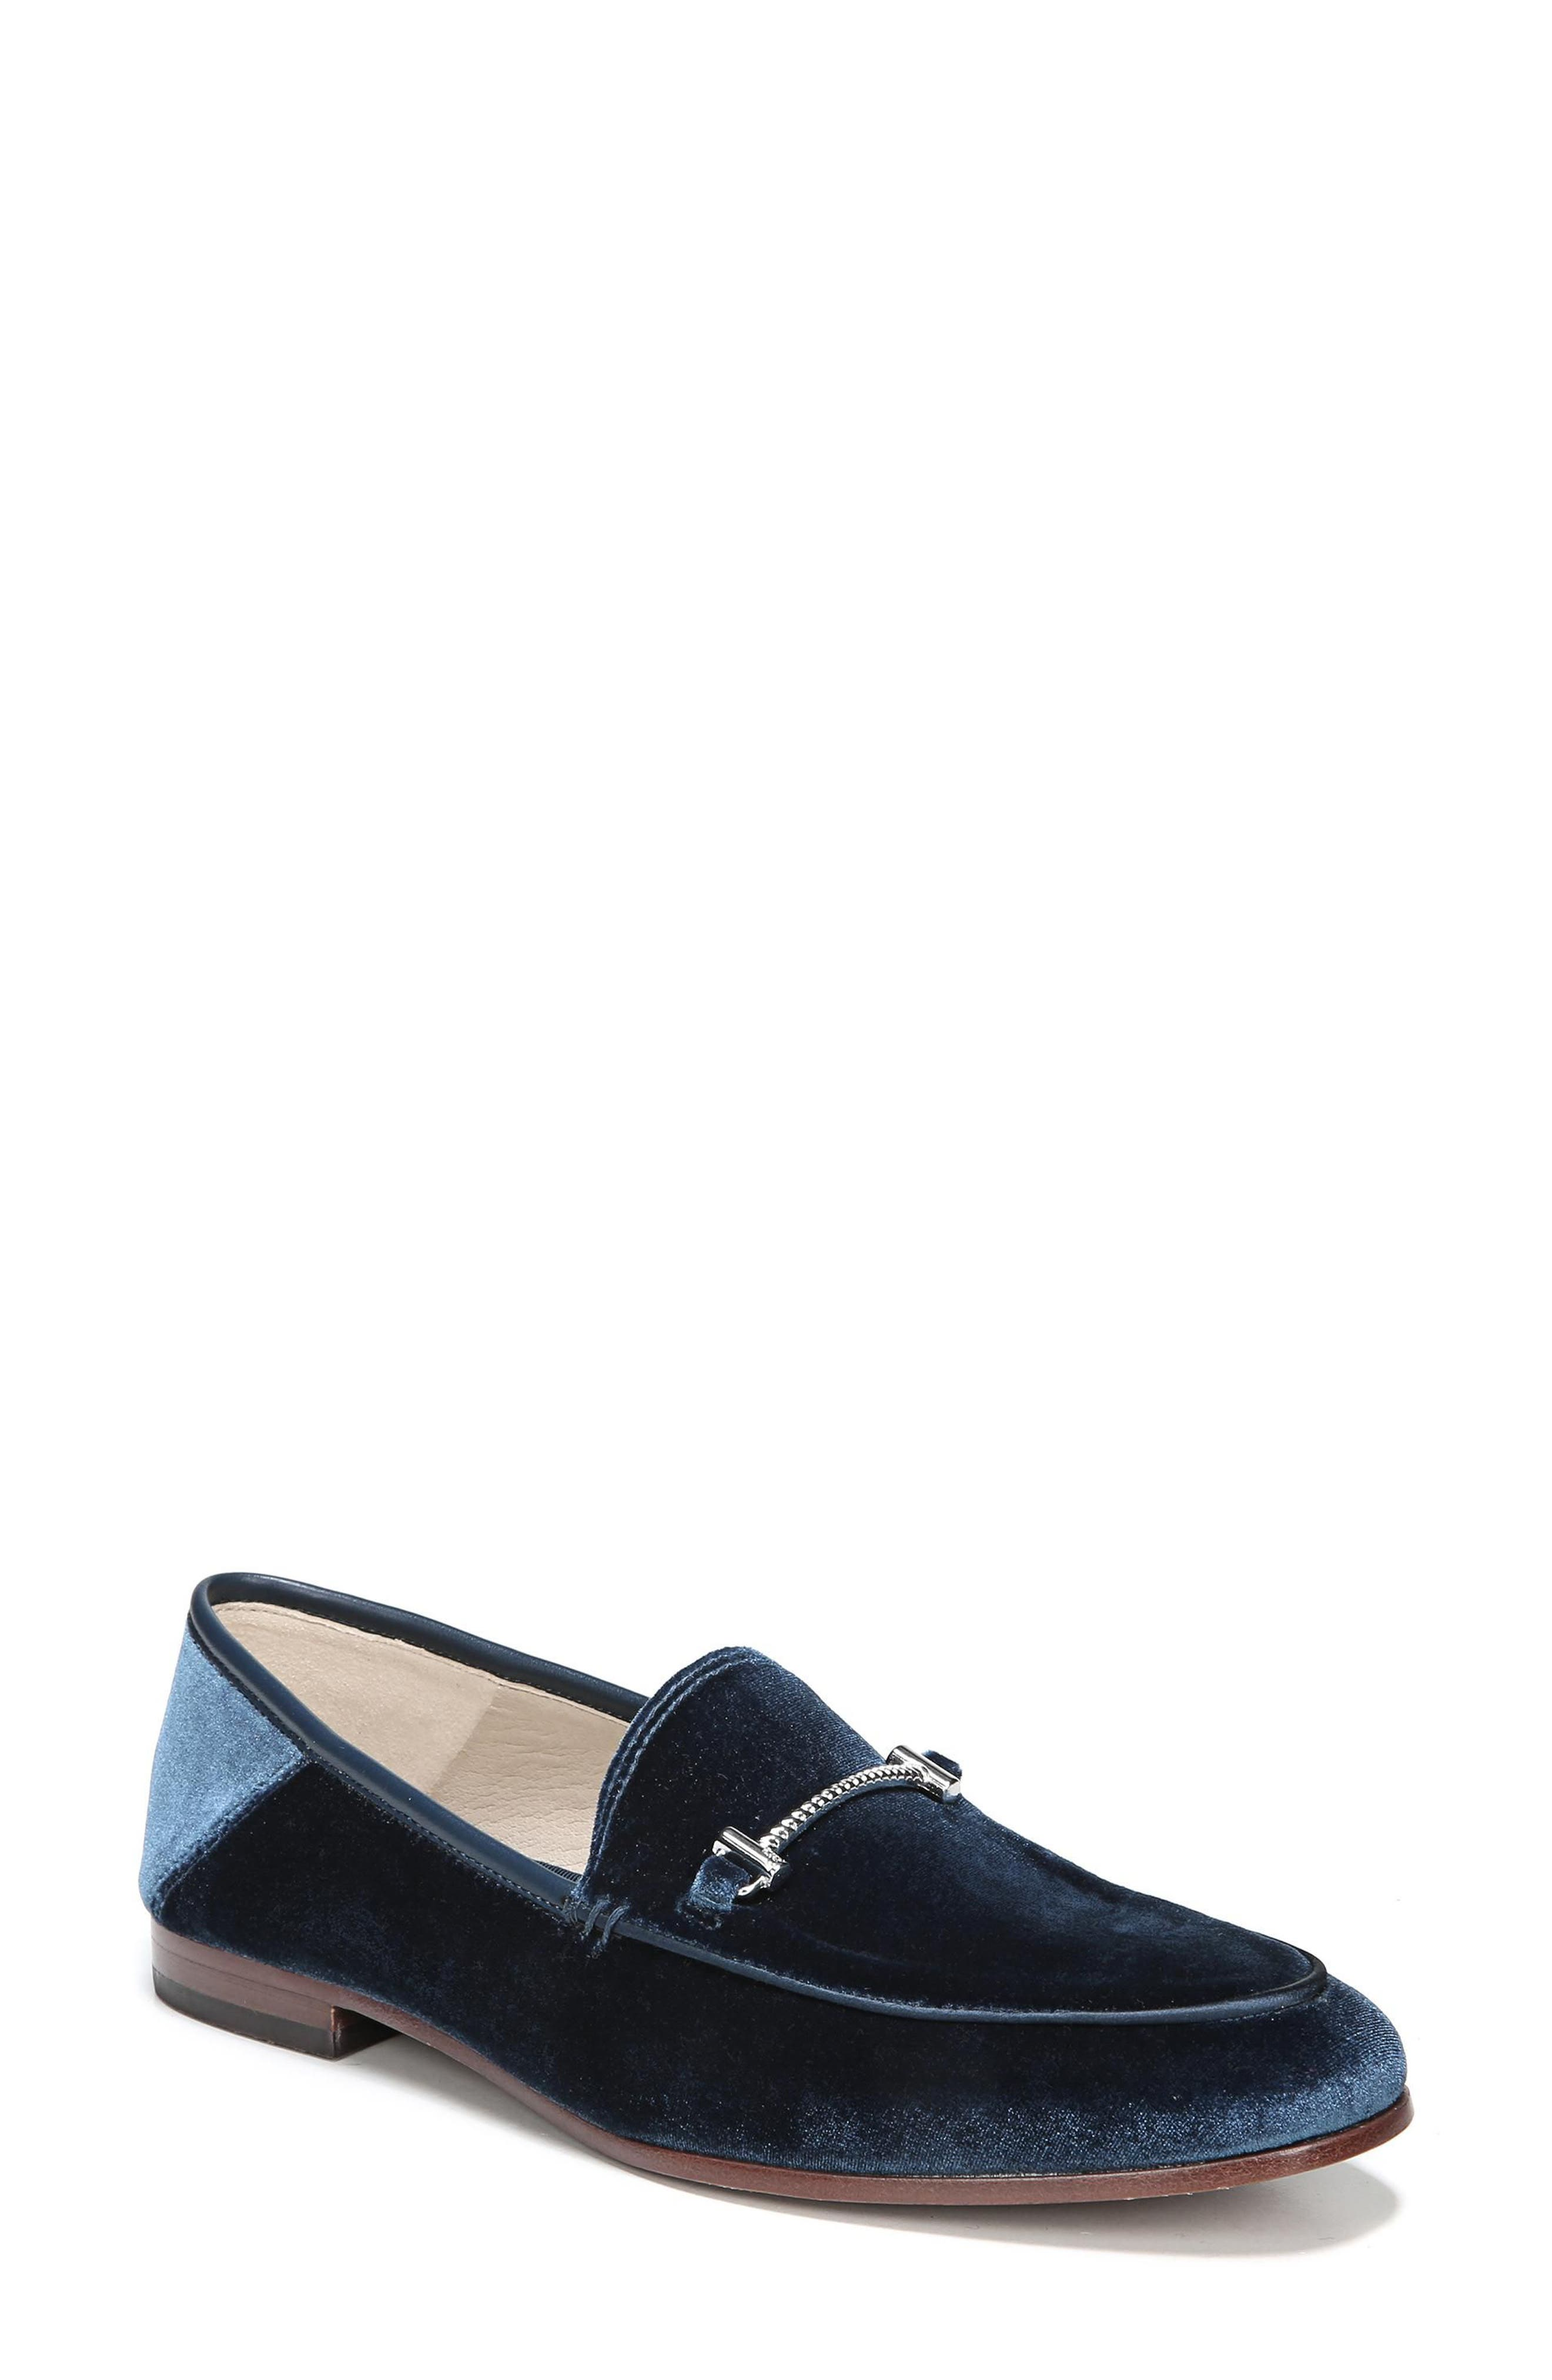 Sam Edelman Lior Loafer (Women)